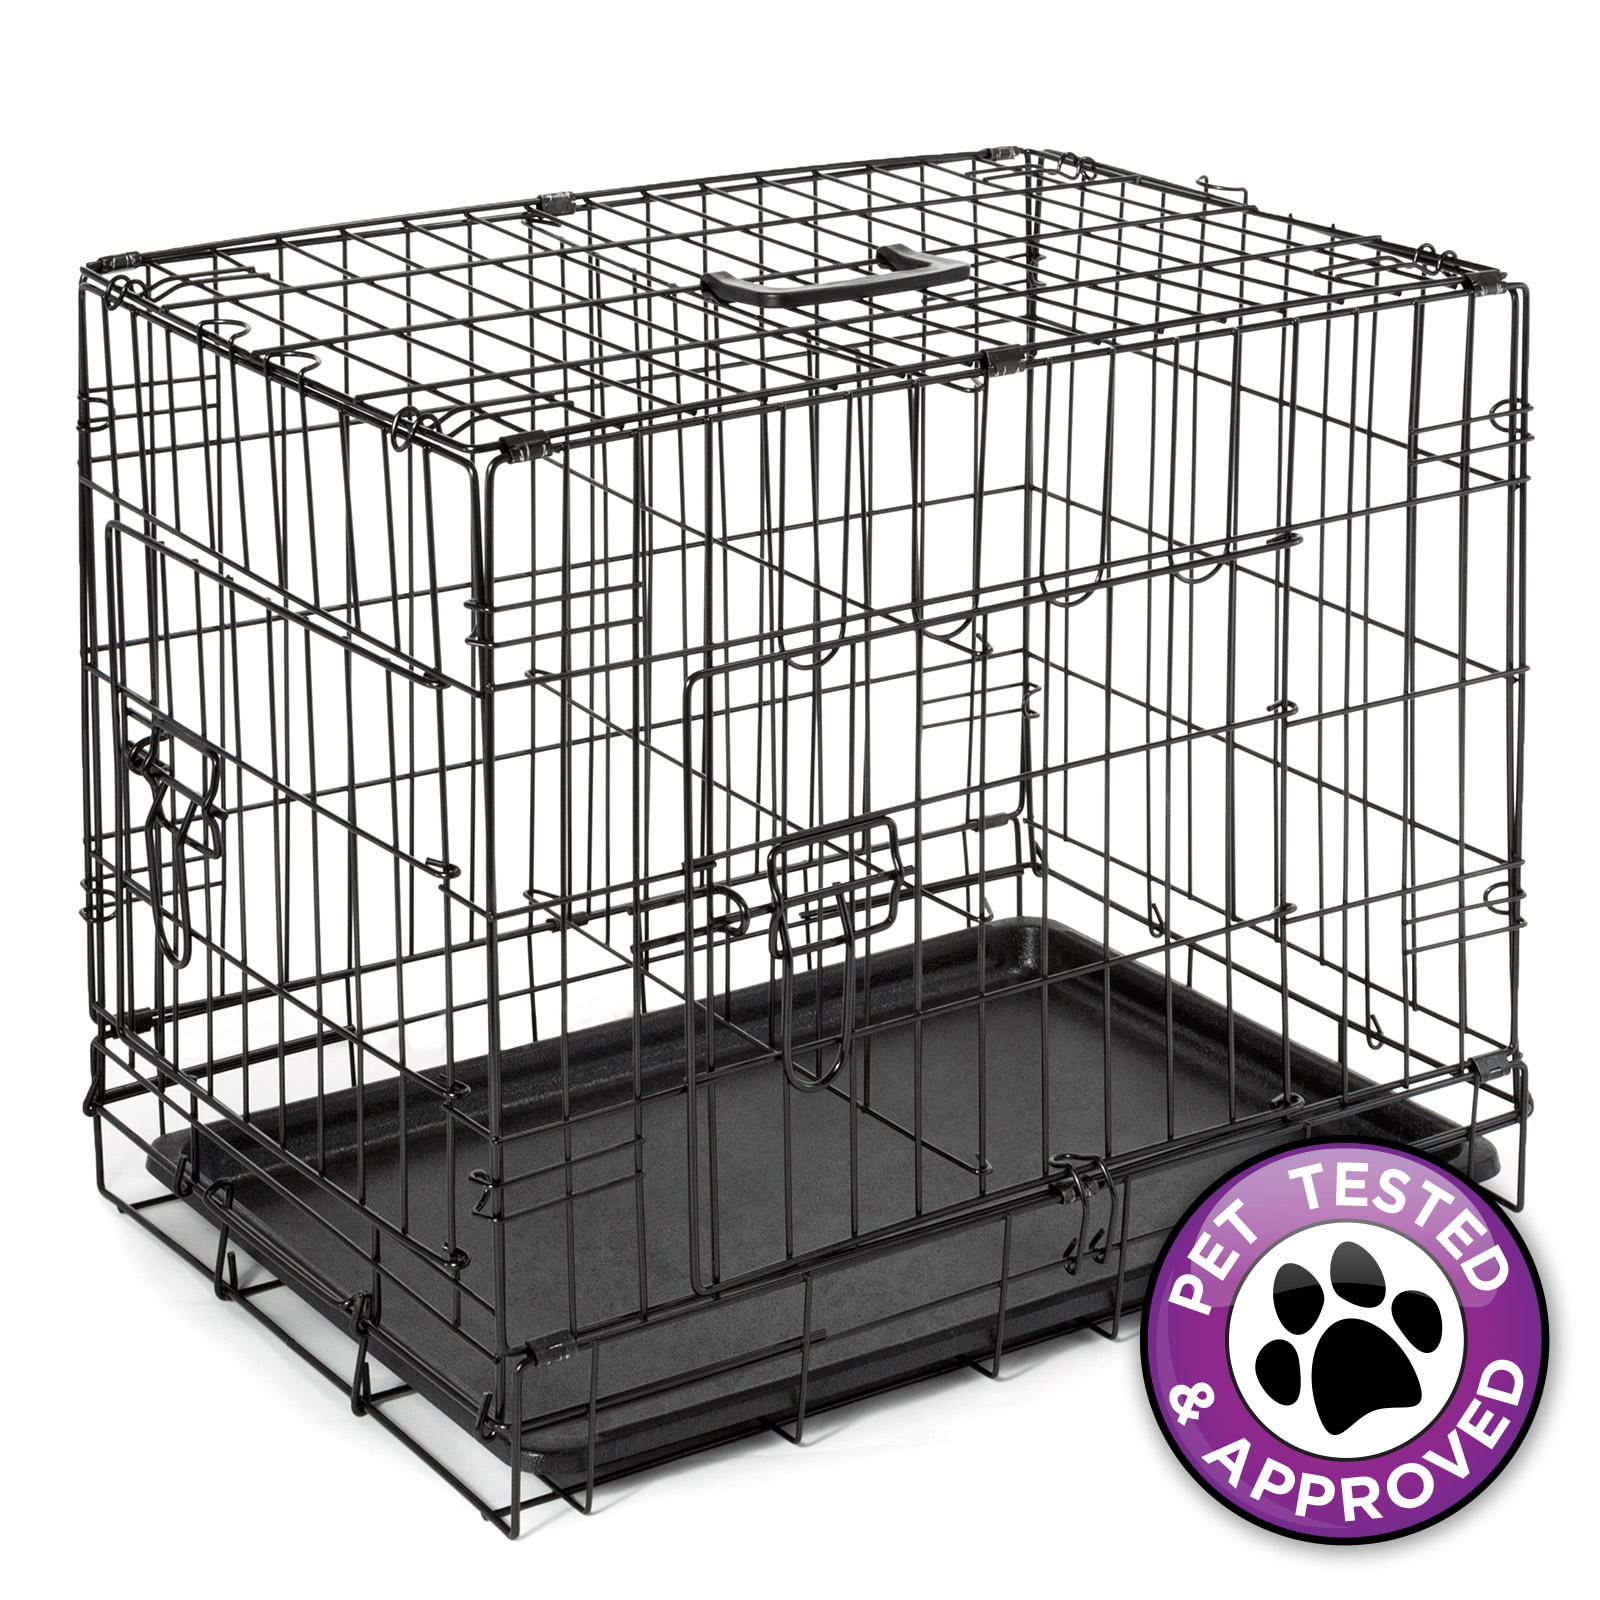 20 Dog Cage Crate Folding Kennel with Divider Pet Puppy